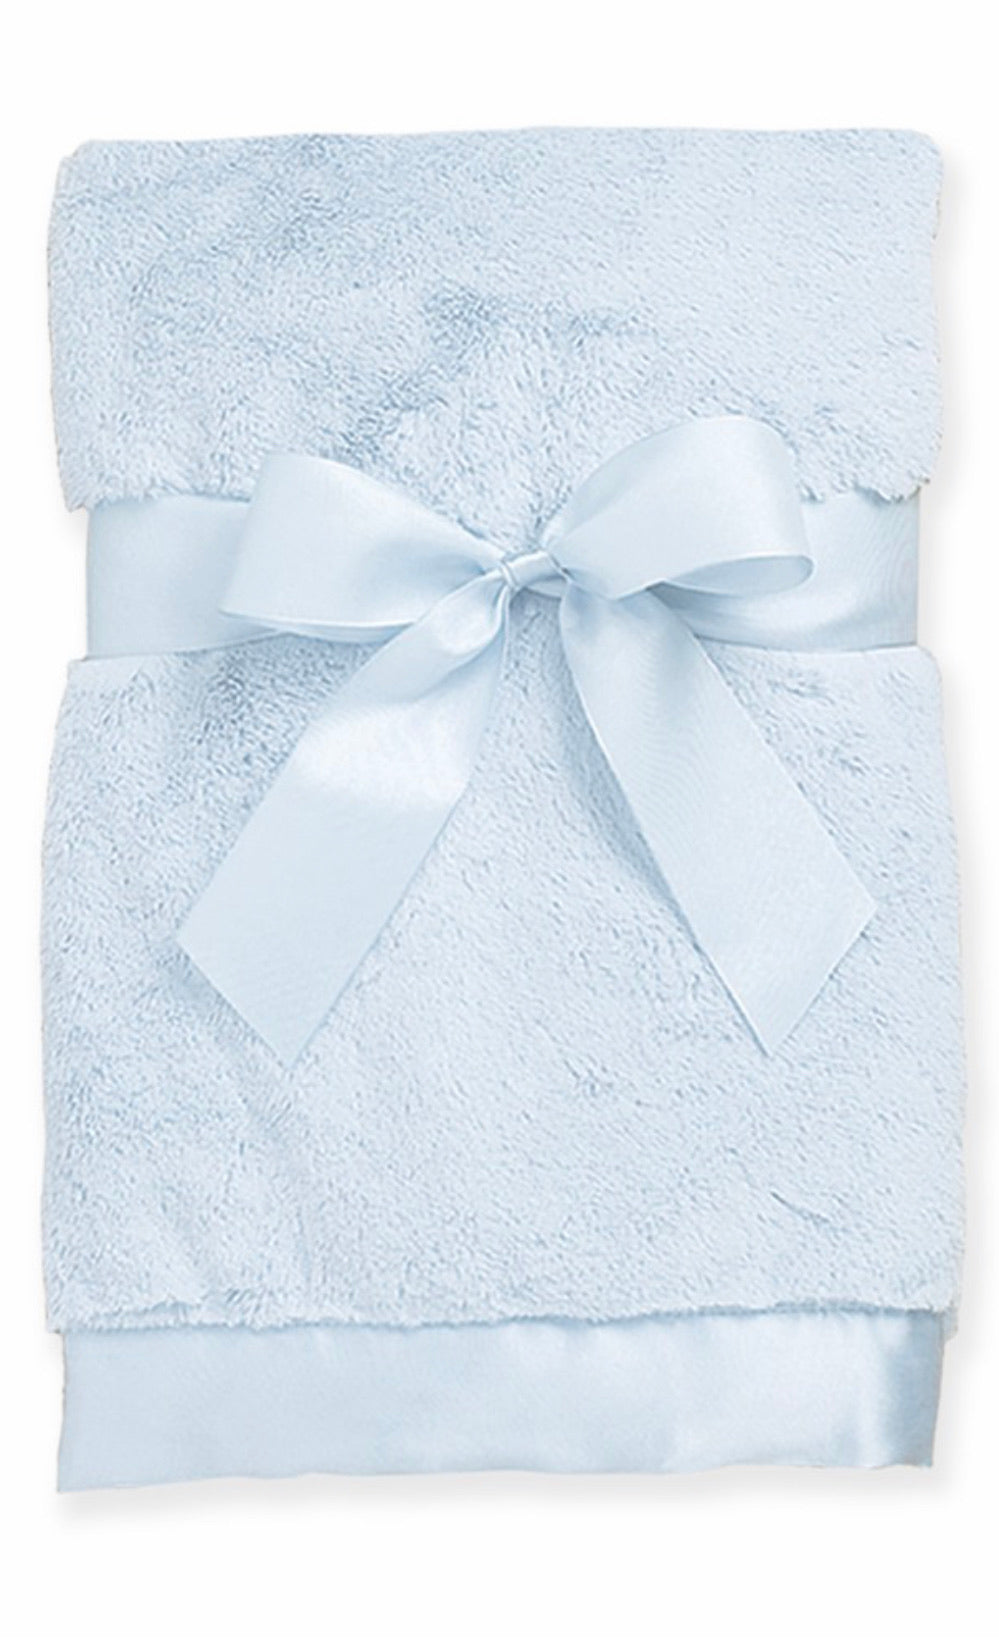 "Bearington Baby - Light Blue Silky Soft Crib Blanket, 36"" x 29"""